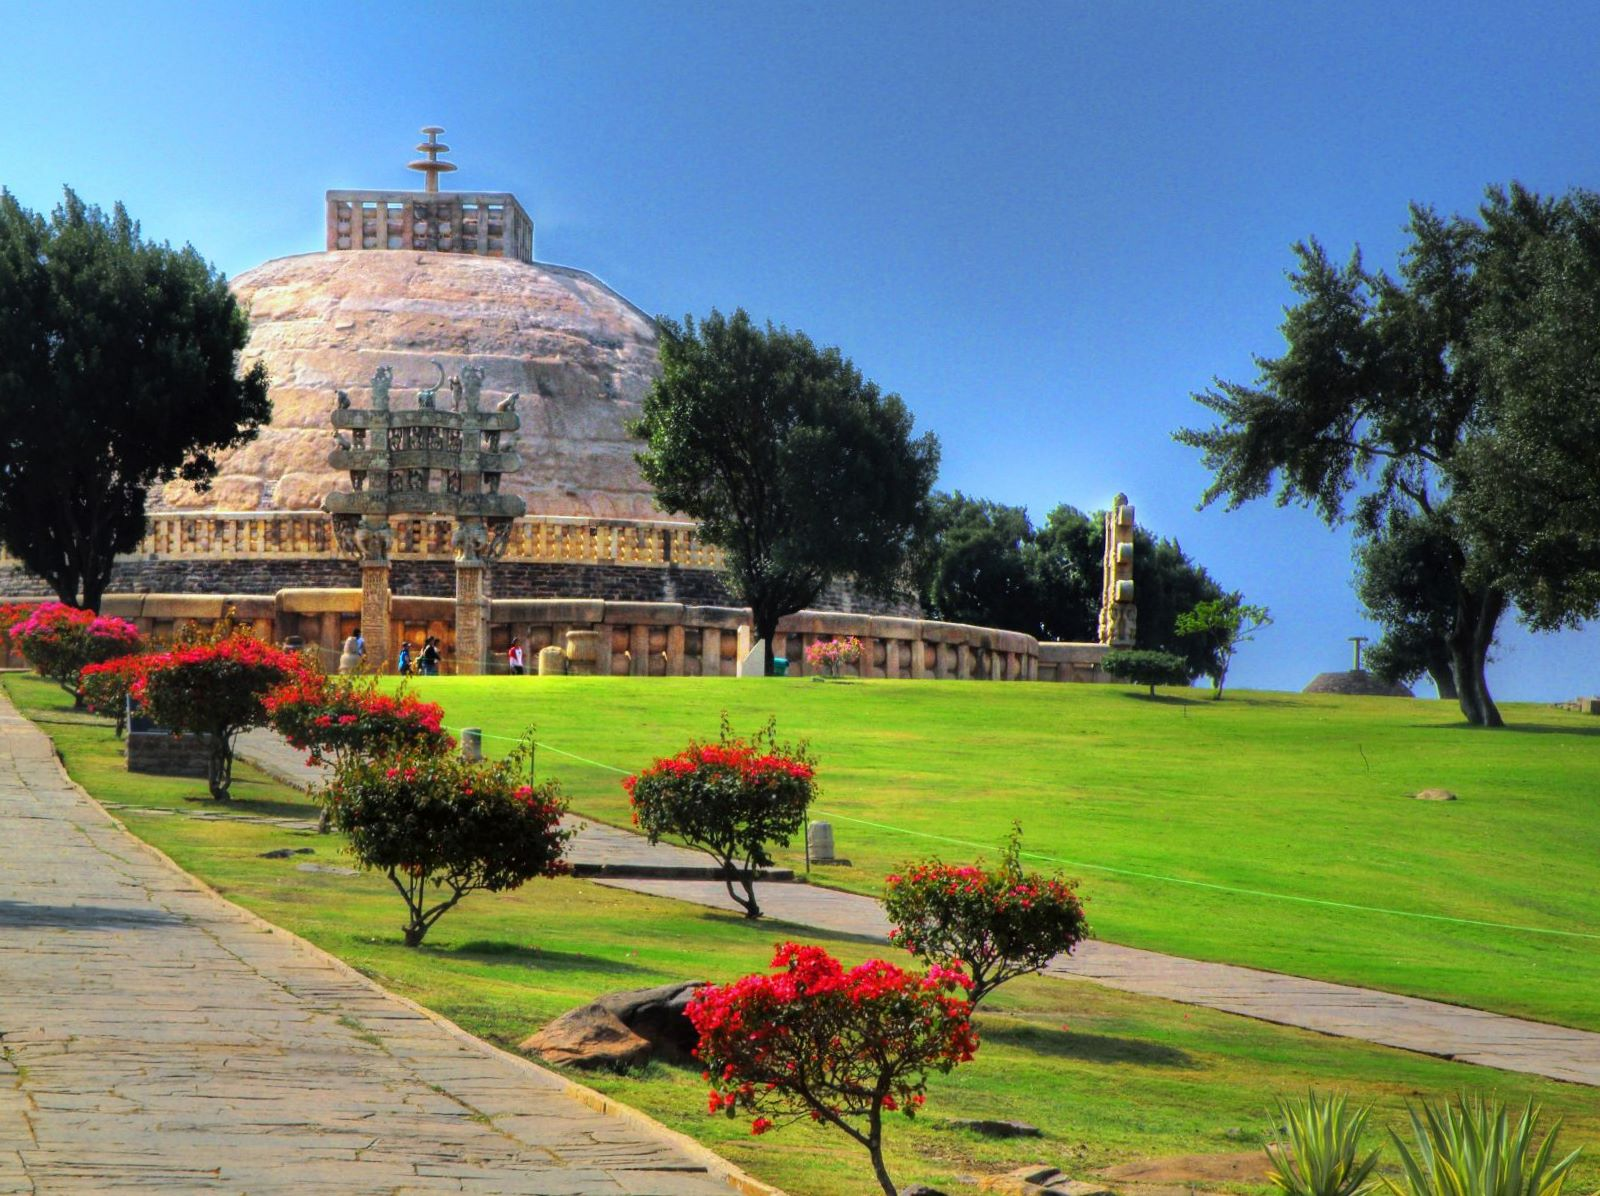 sanchi stupa Sanchi university of buddhist-indic studies is meant to address the educationalists, academicians, philosophers, researchers, practitioners around the world to spread all aspects of buddhist-indic studies from philosophy to culture which give a new face to humanity and religion.